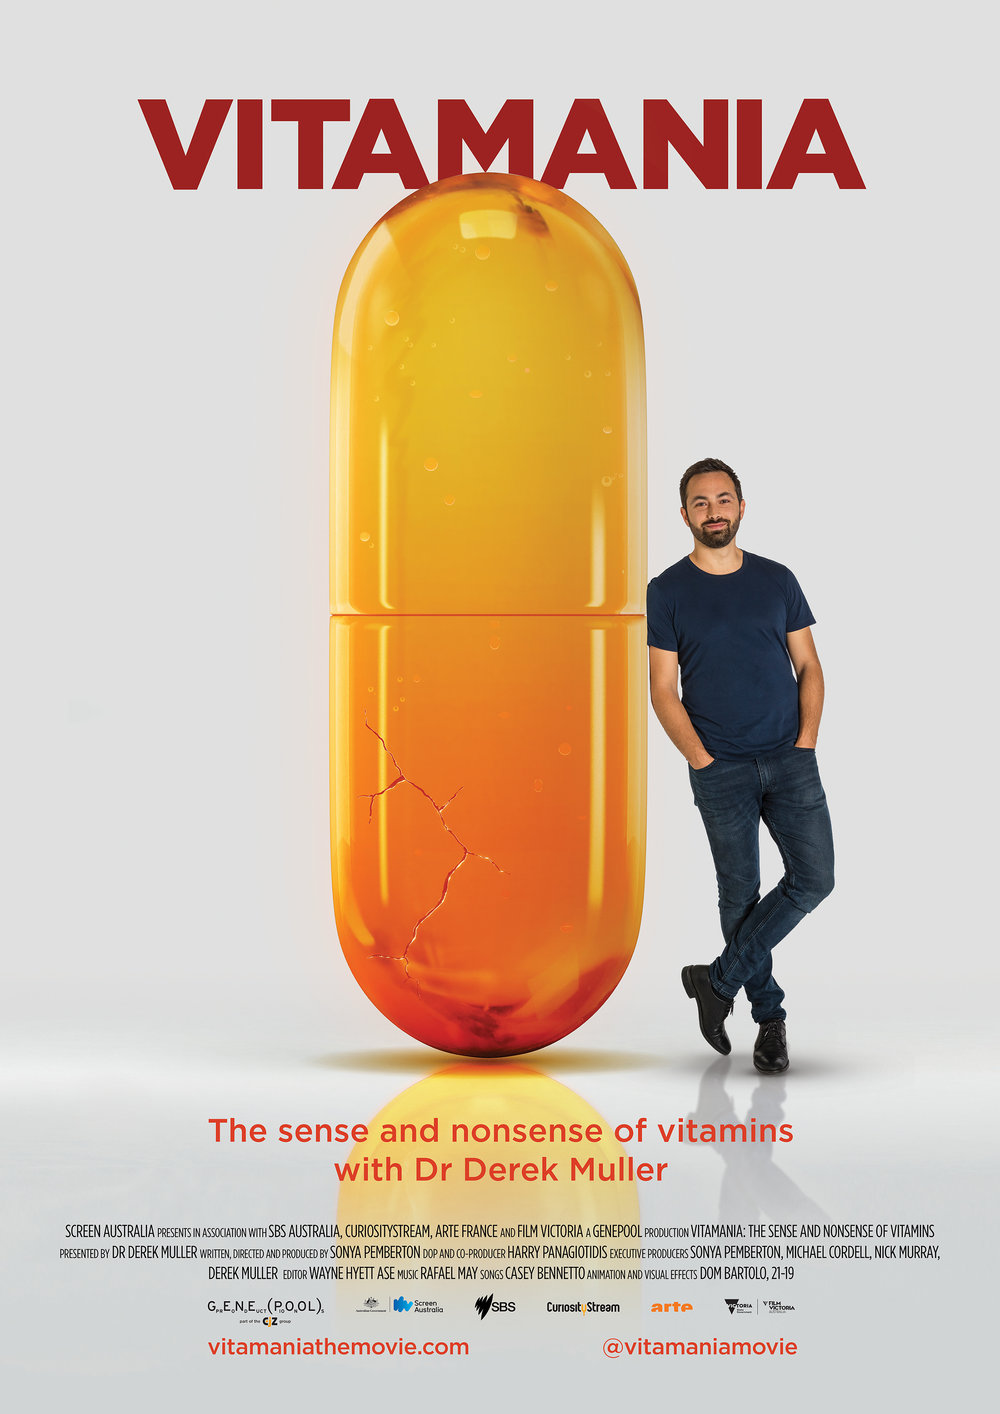 Vitamania - The Sense and Nonsense of Vitamins